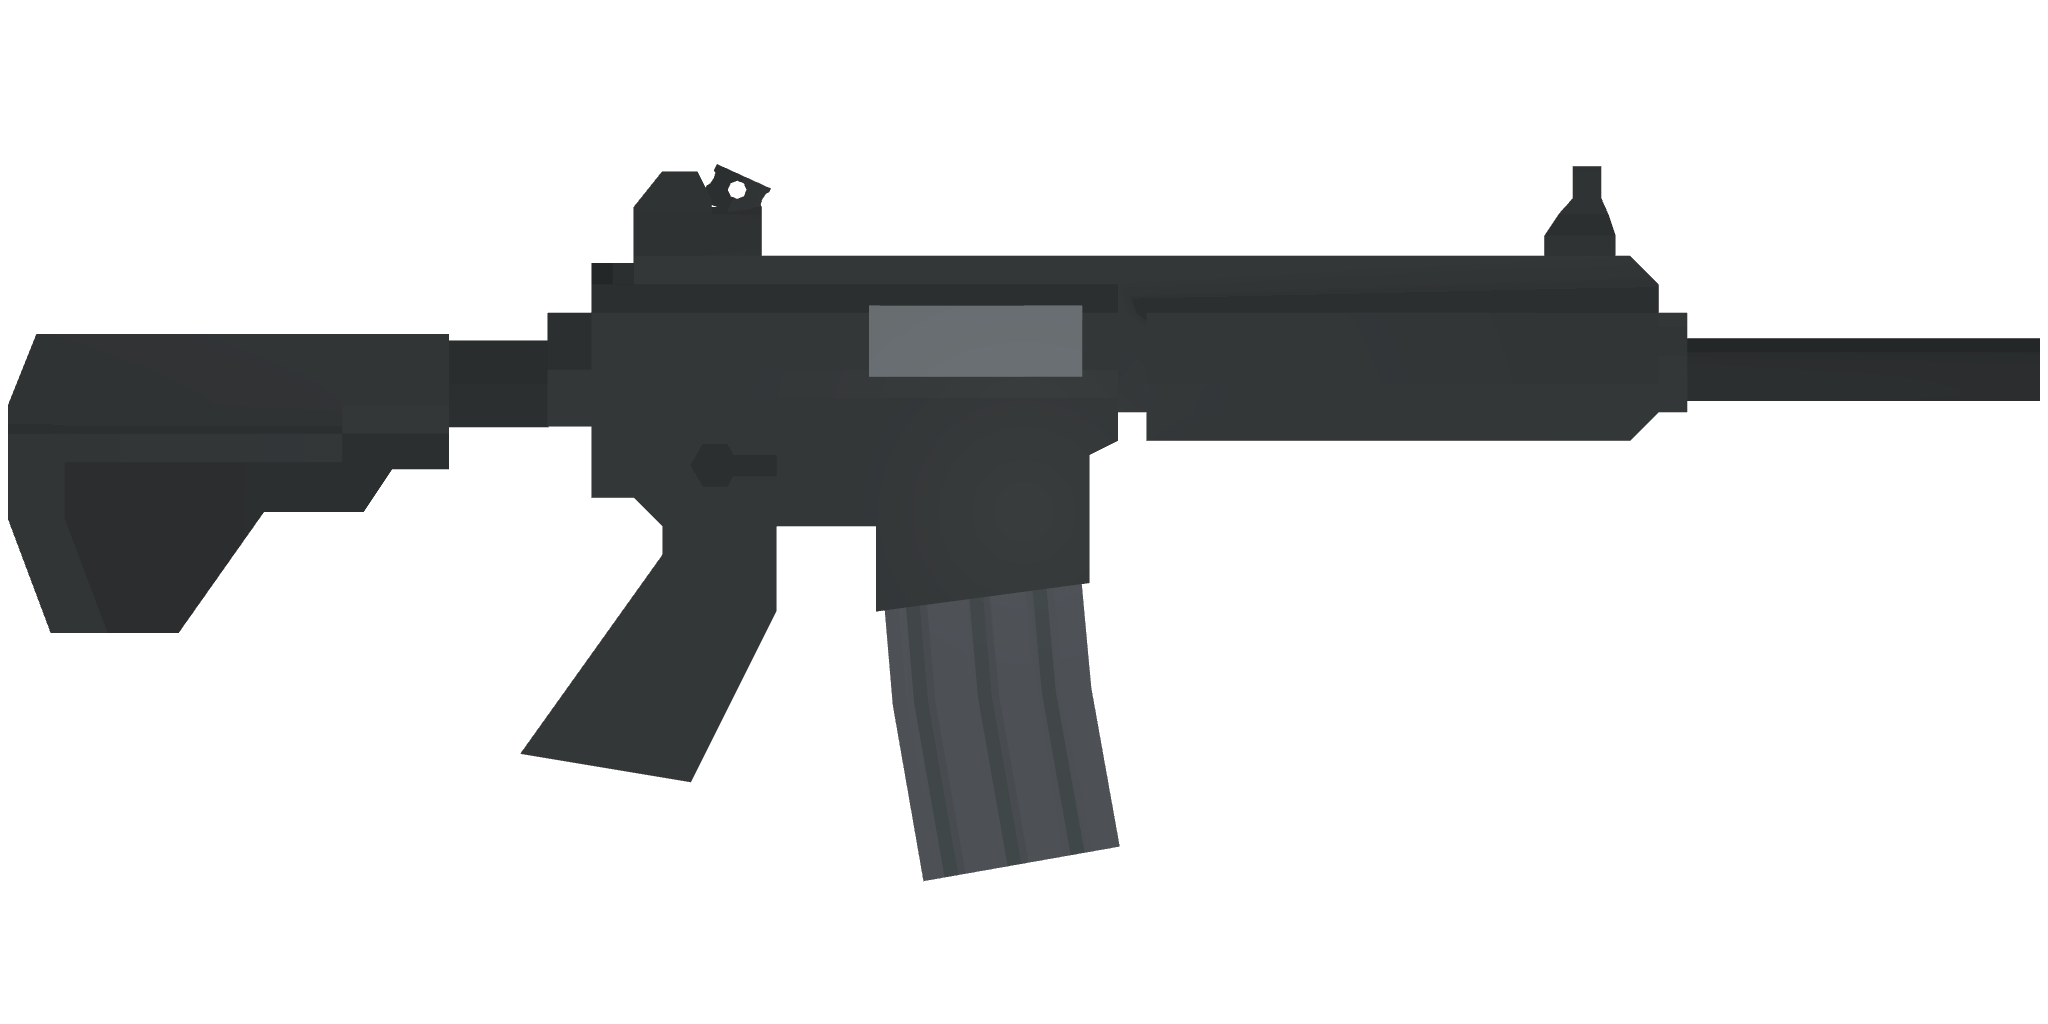 Unturned Uncreated Warfare Mods & All ID List + Attachments - USA Weapons - E2FC49B